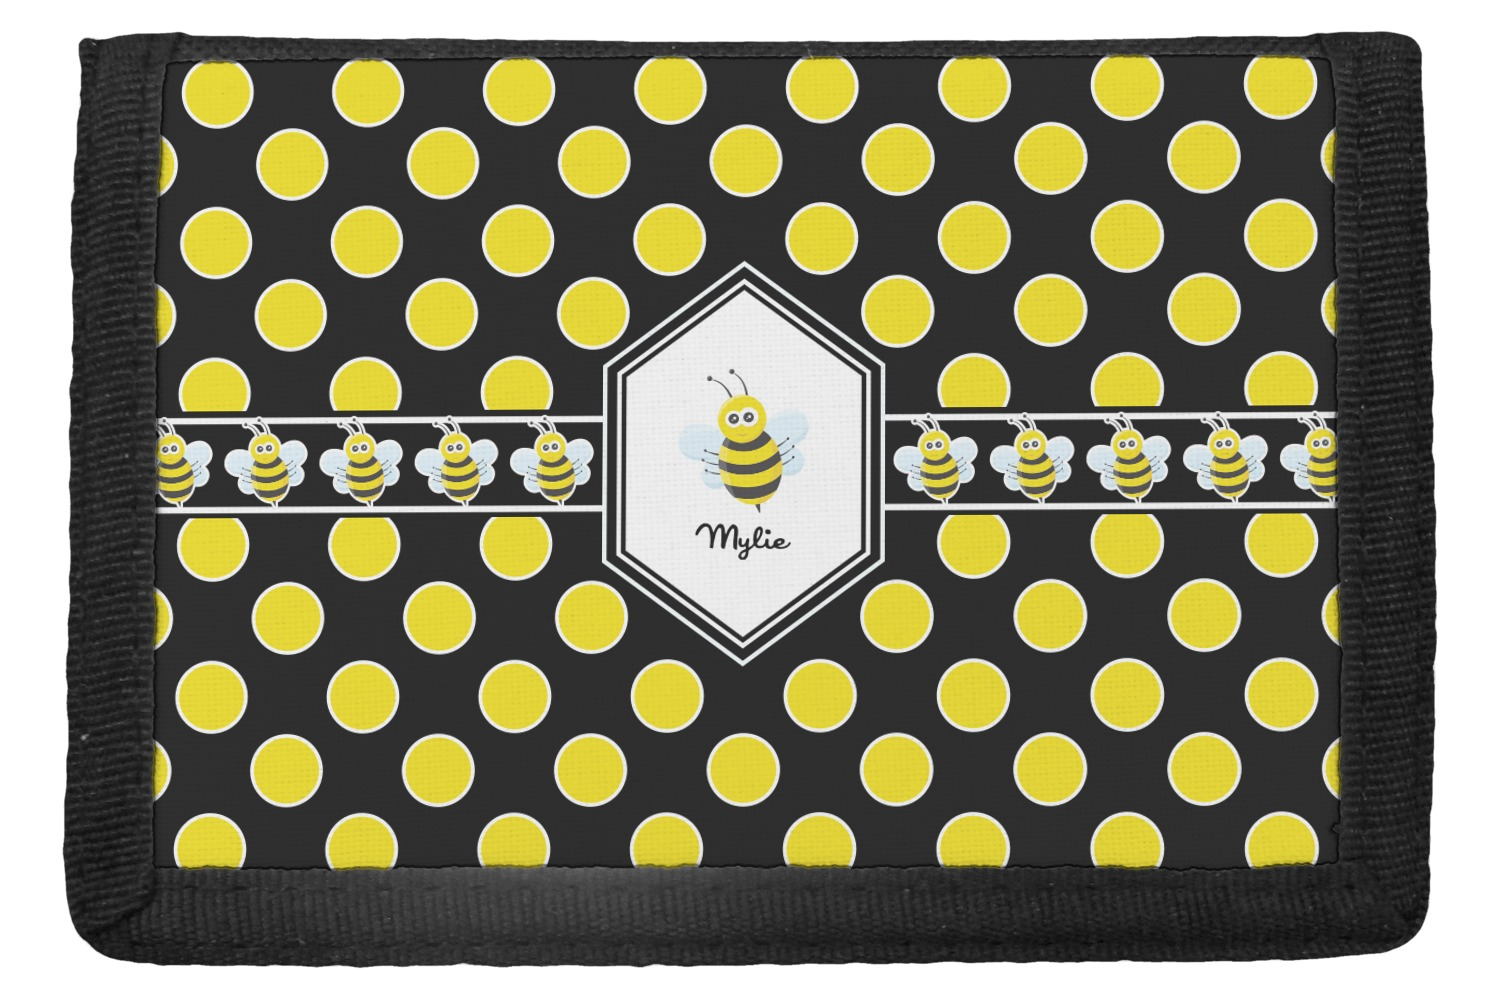 d8248eefb16 Bee   Polka Dots Trifold Wallet (Personalized) - YouCustomizeIt